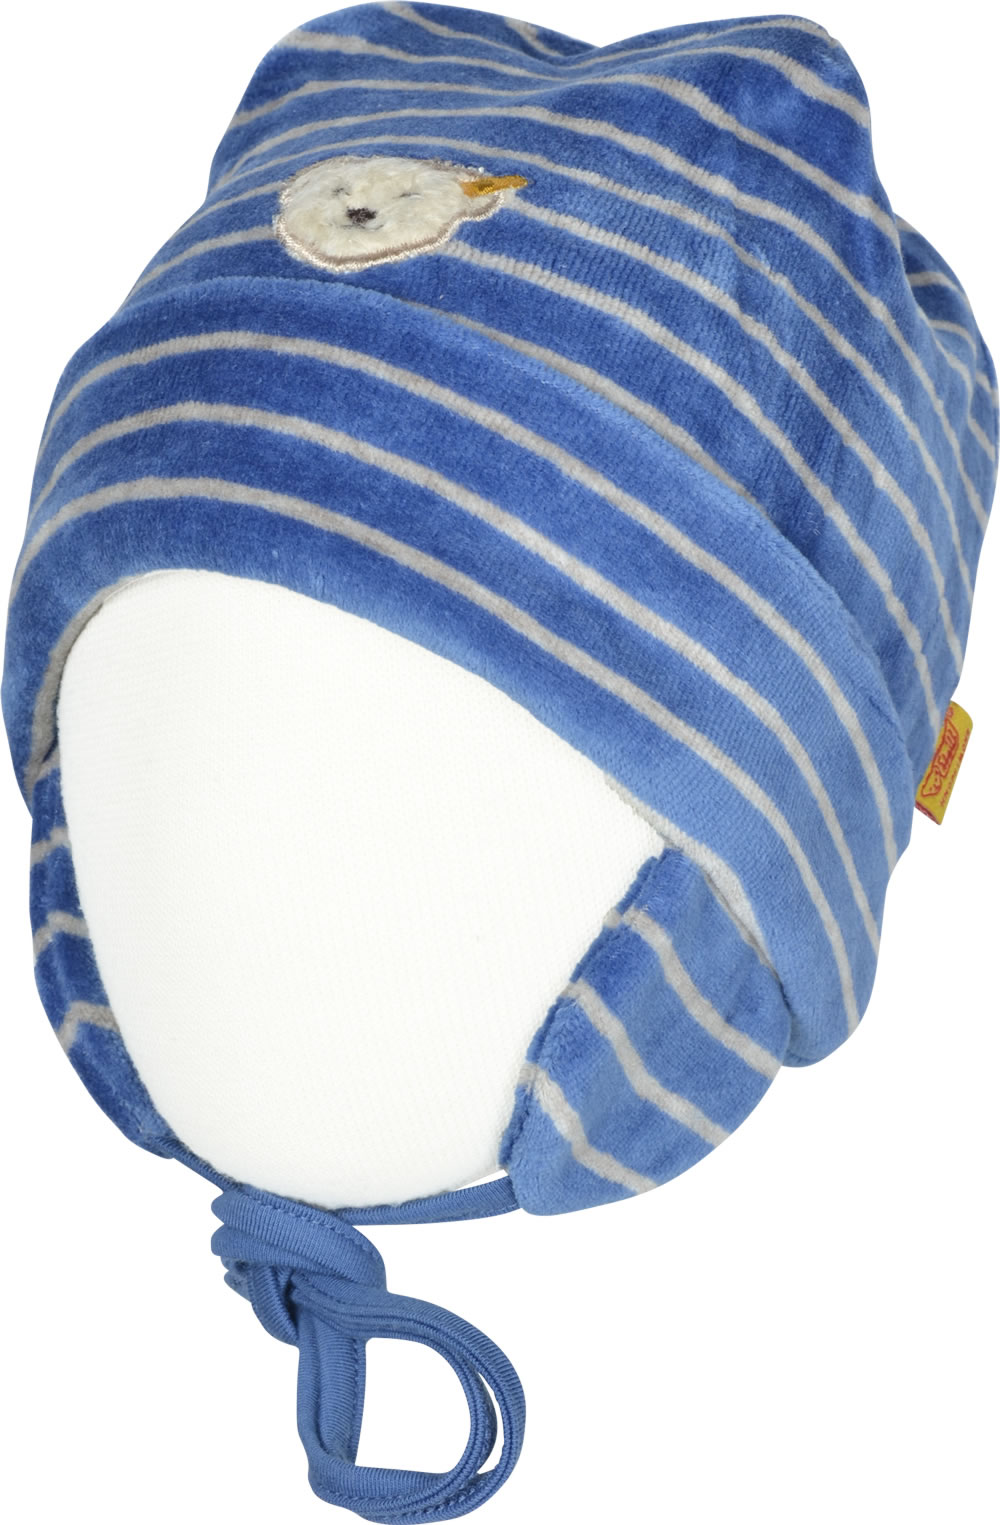 Mütze Baby Baumwolle Steiff Baby Nicky Mütze Winter Color Nicky Federal Blue 6722910 3064